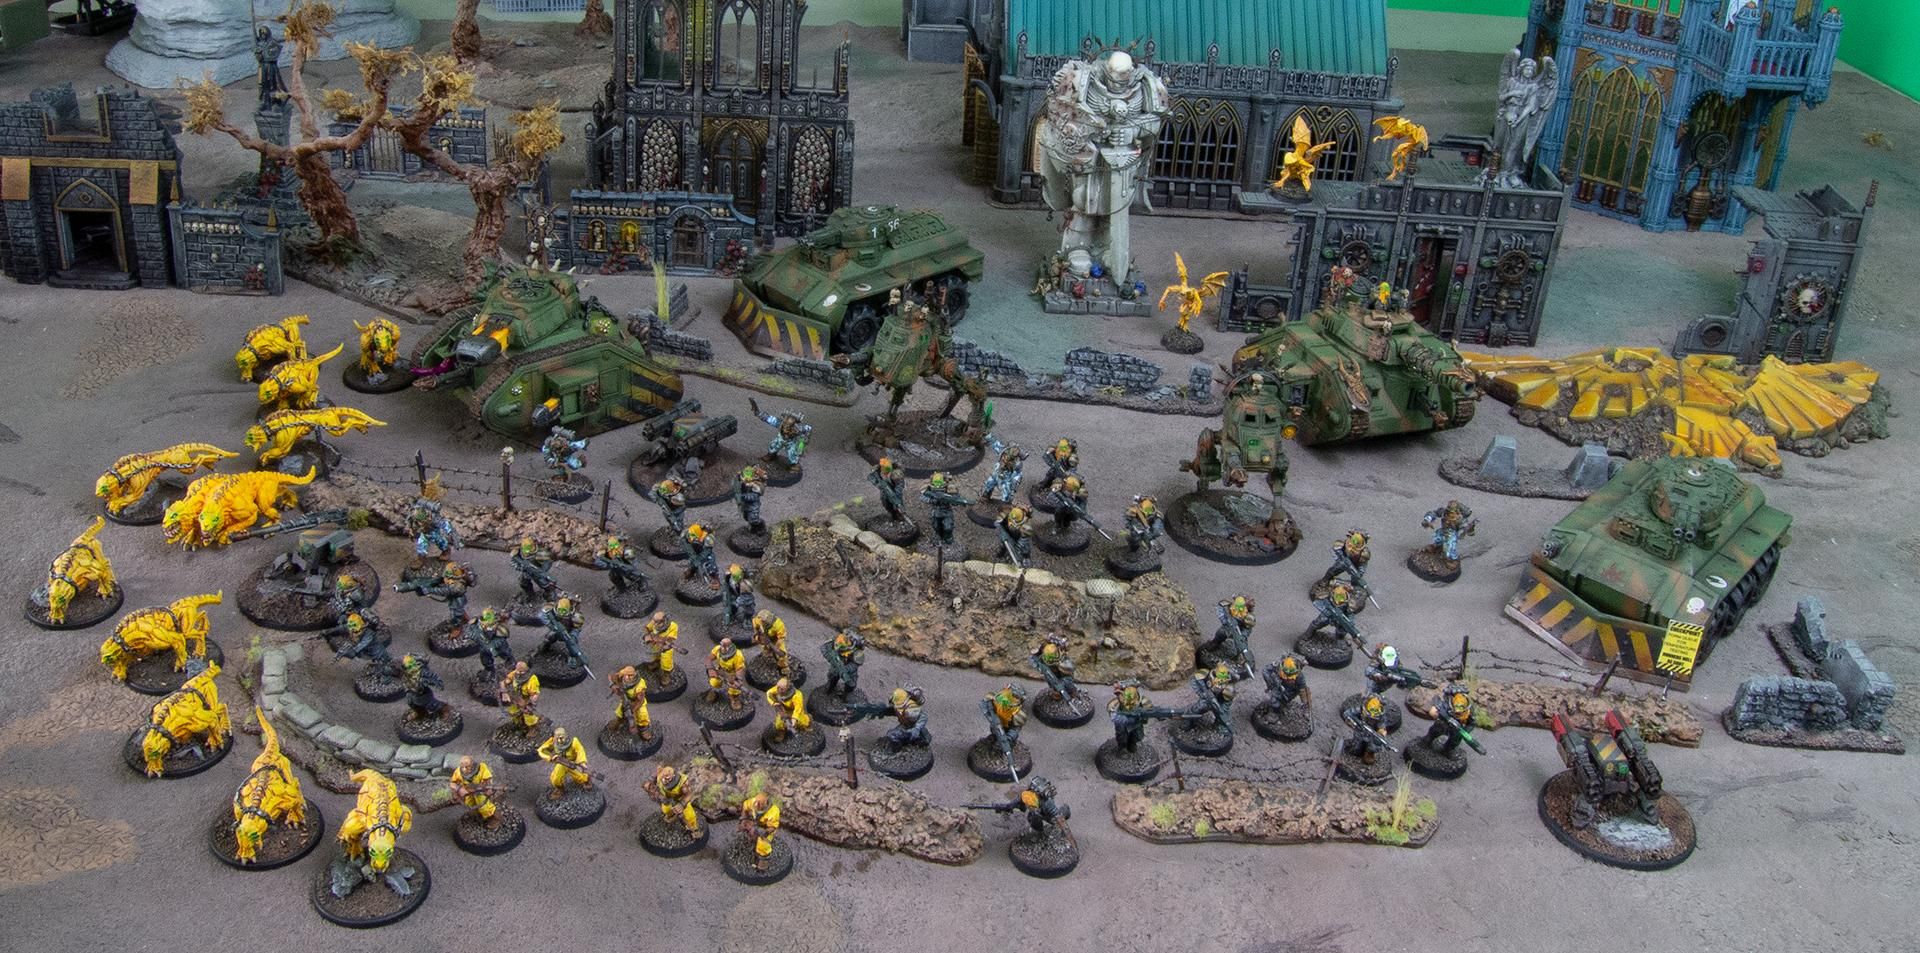 Astra Militarum, Chaos, Forge World, Imperial Guard, Renegade Guard, Traitor, Traitor Guard